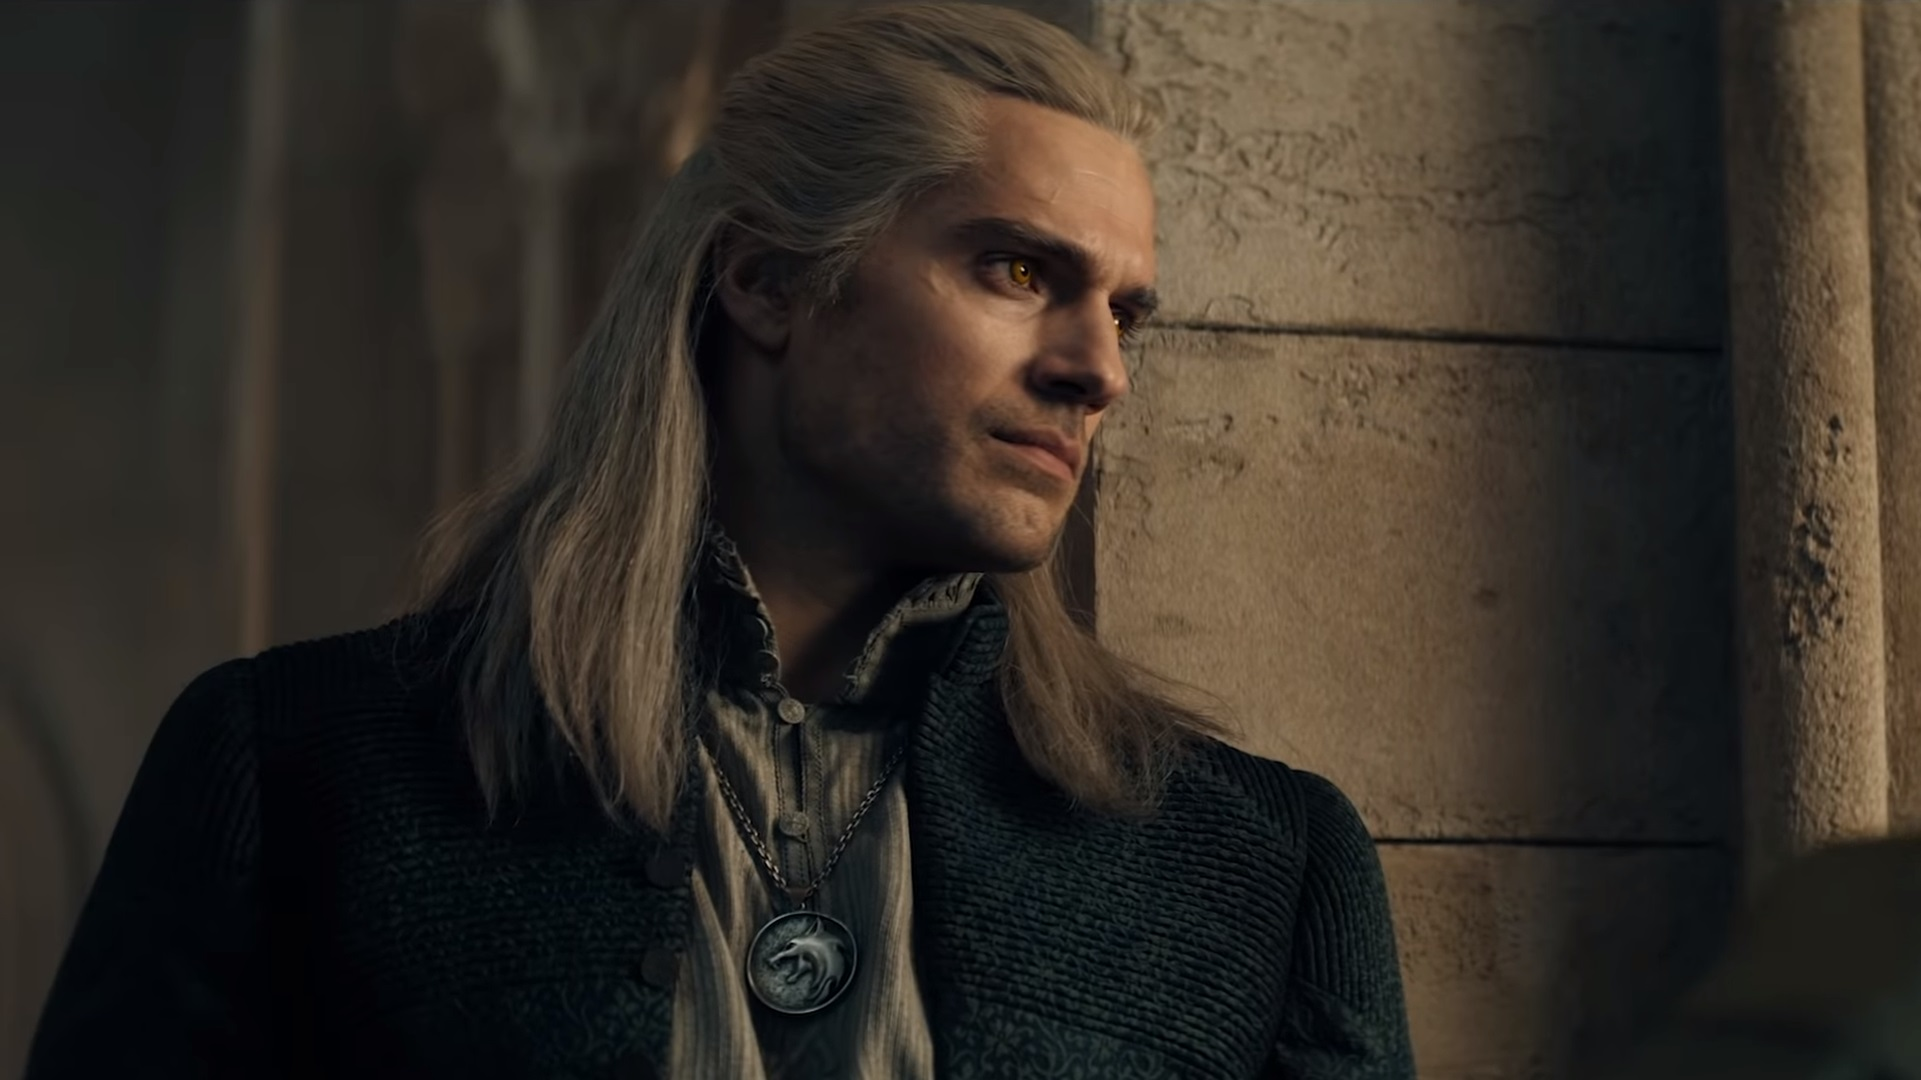 The Wicther Geralt of Rivia